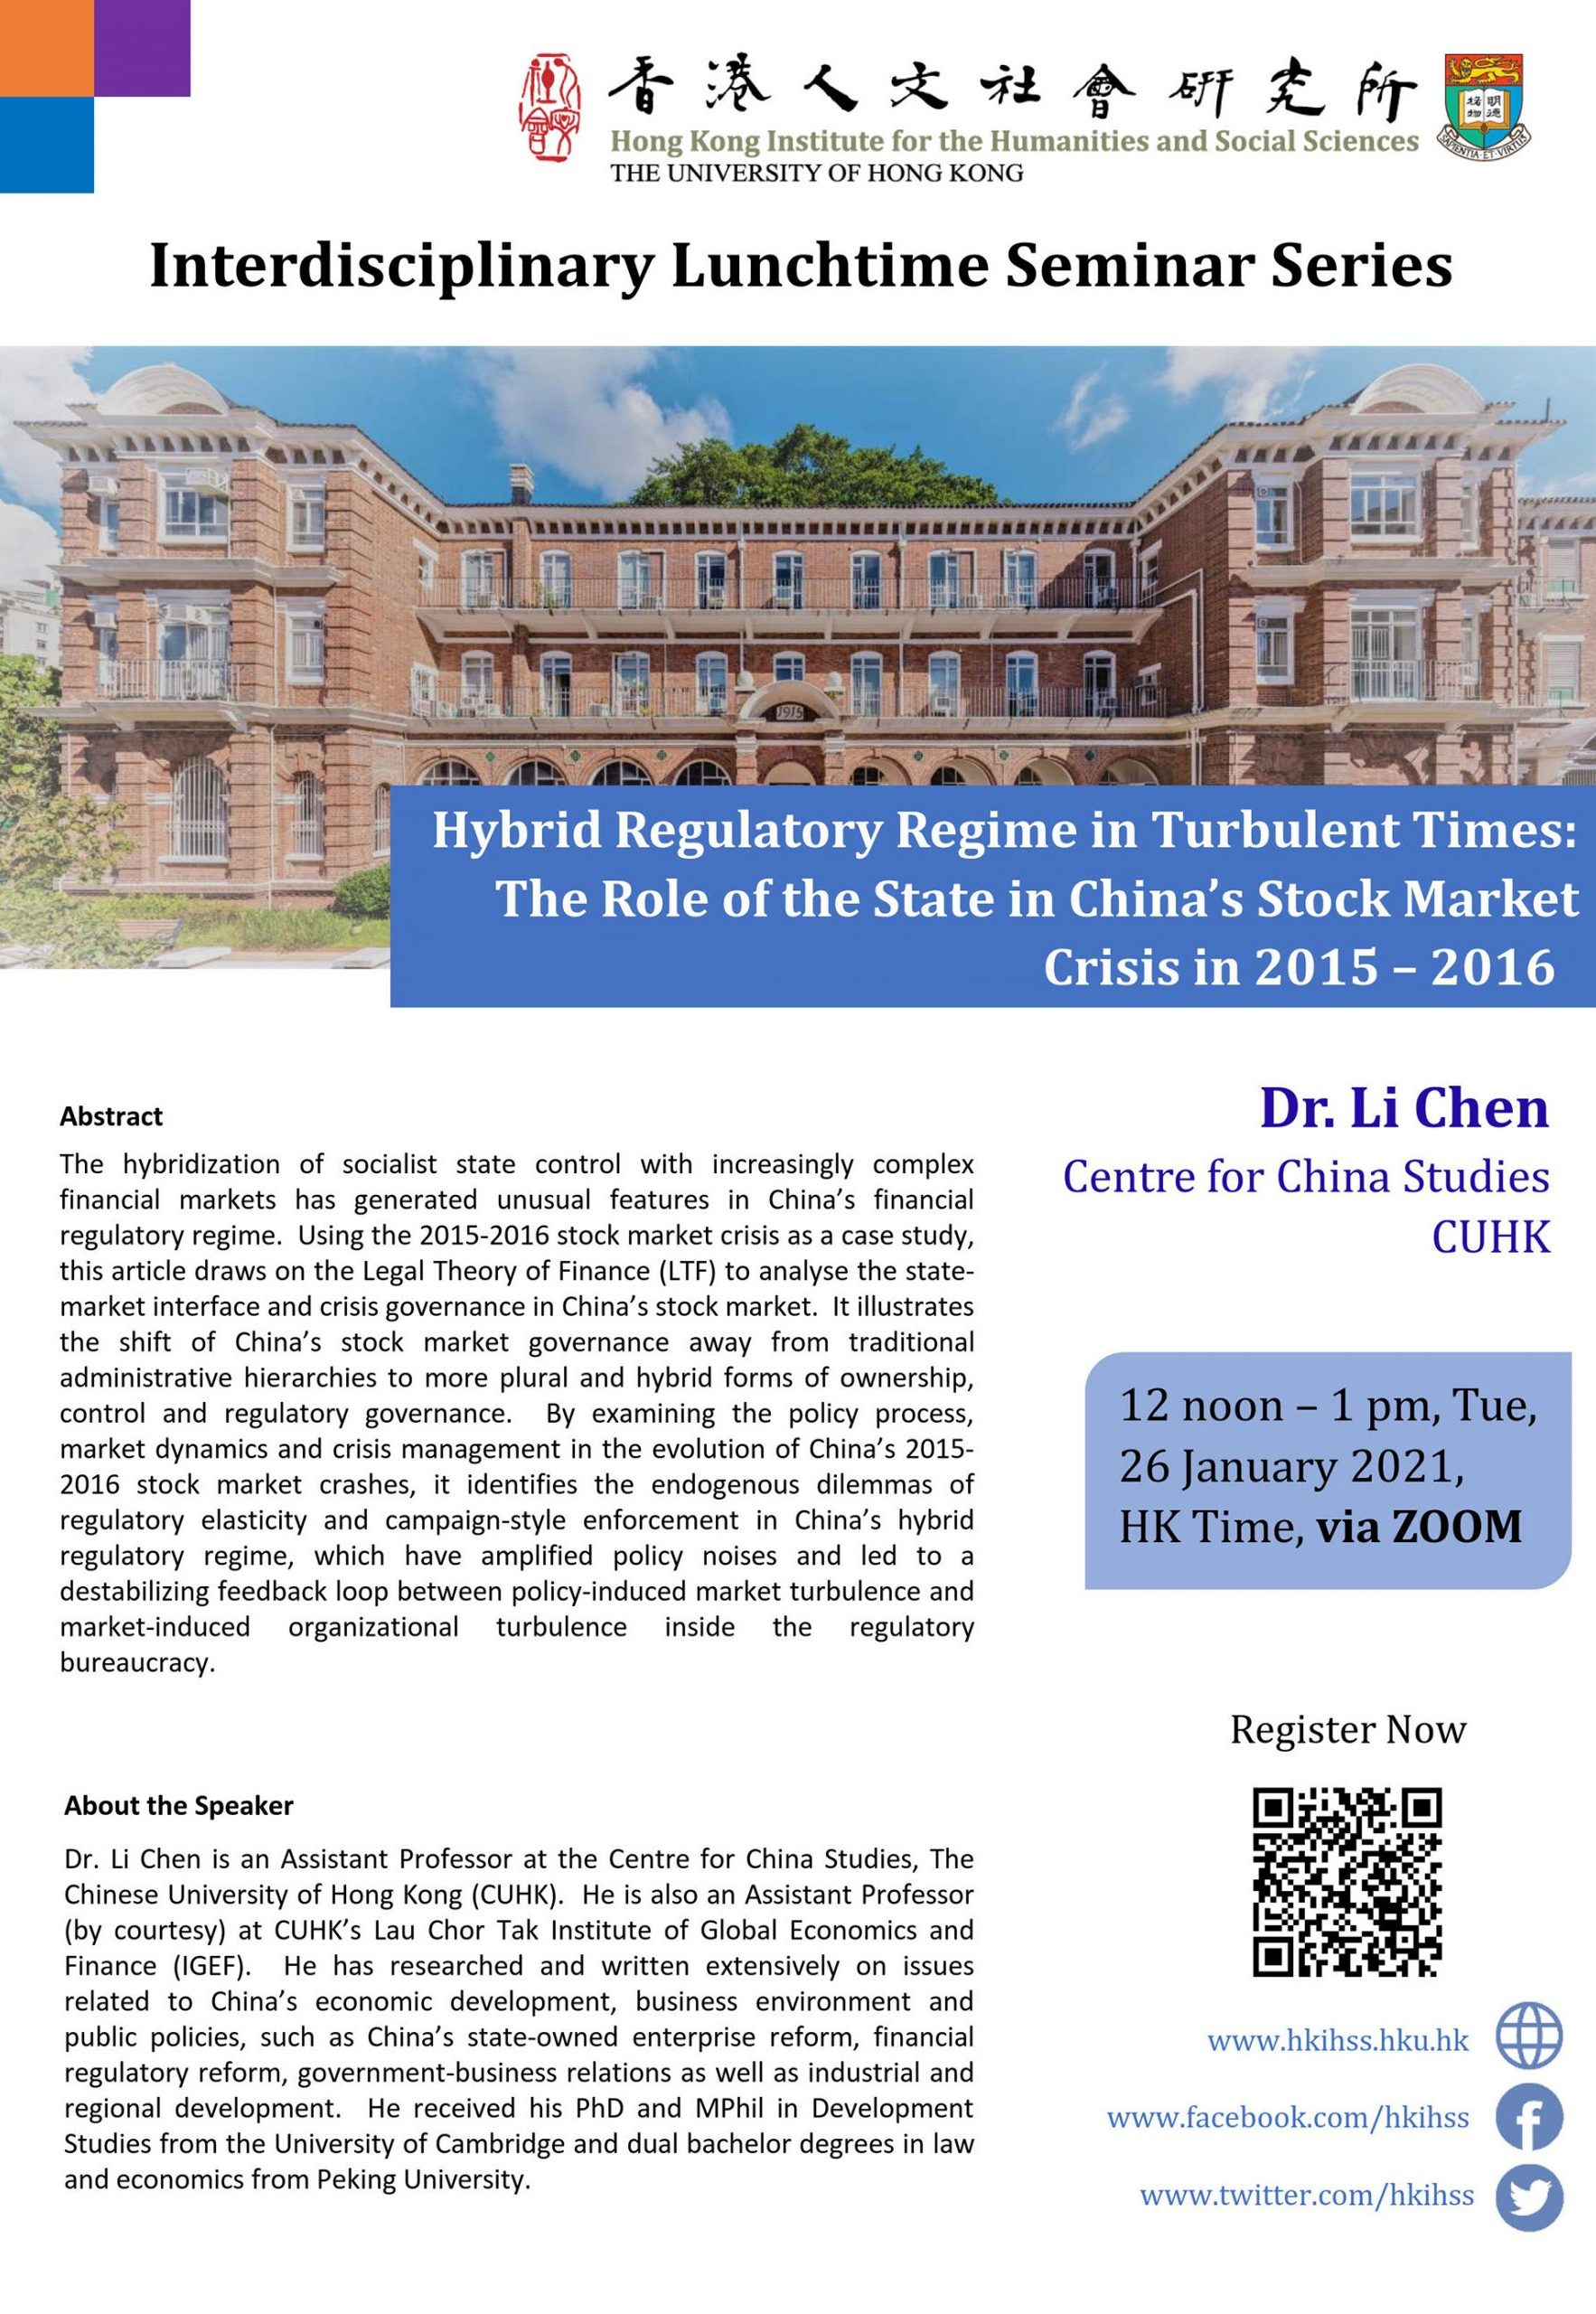 """Interdisciplinary Lunchtime Seminar on """"Hybrid Regulatory Regime in Turbulent Times: The Role of the State in China's Stock Market Crisis in 2015 – 2016"""" by Dr. Li Chen (January 26, 2021)"""